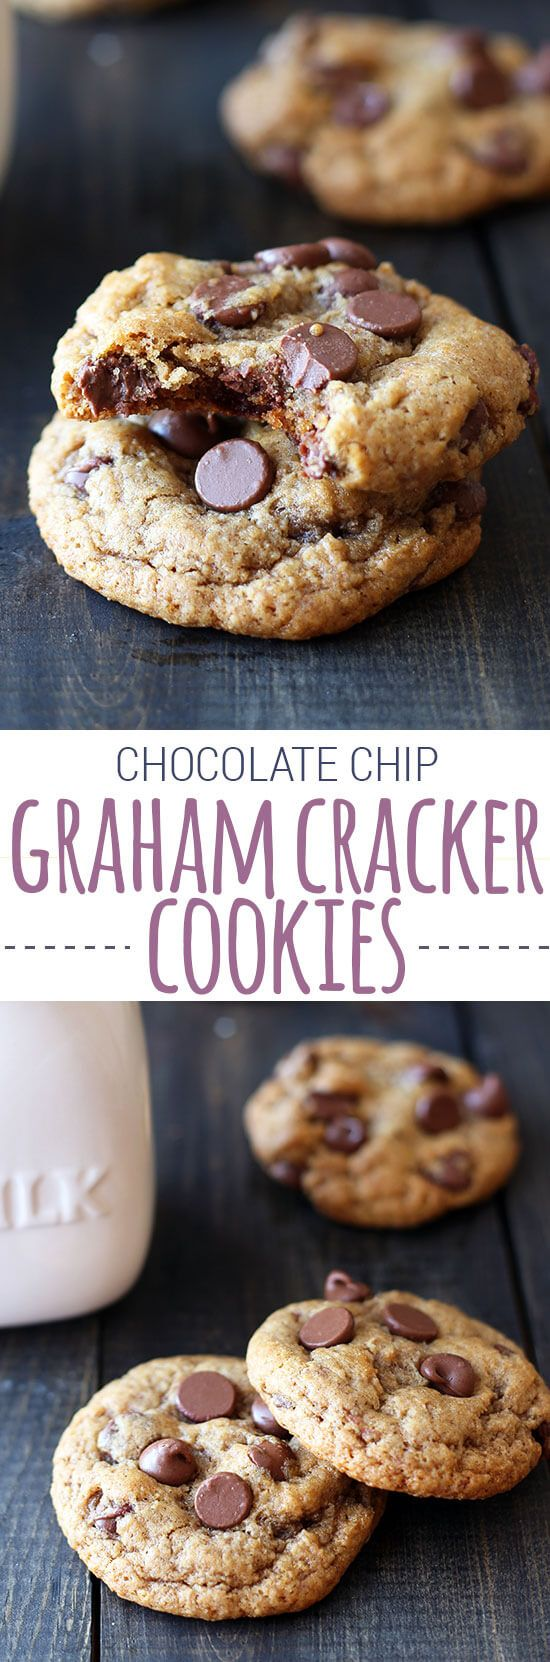 Chocolate Chip Graham Cracker Cookies are uniquely tasty! Chewy homemade graham cracker cookies loaded with milk chocolate chips. Perfect base for s'mores!